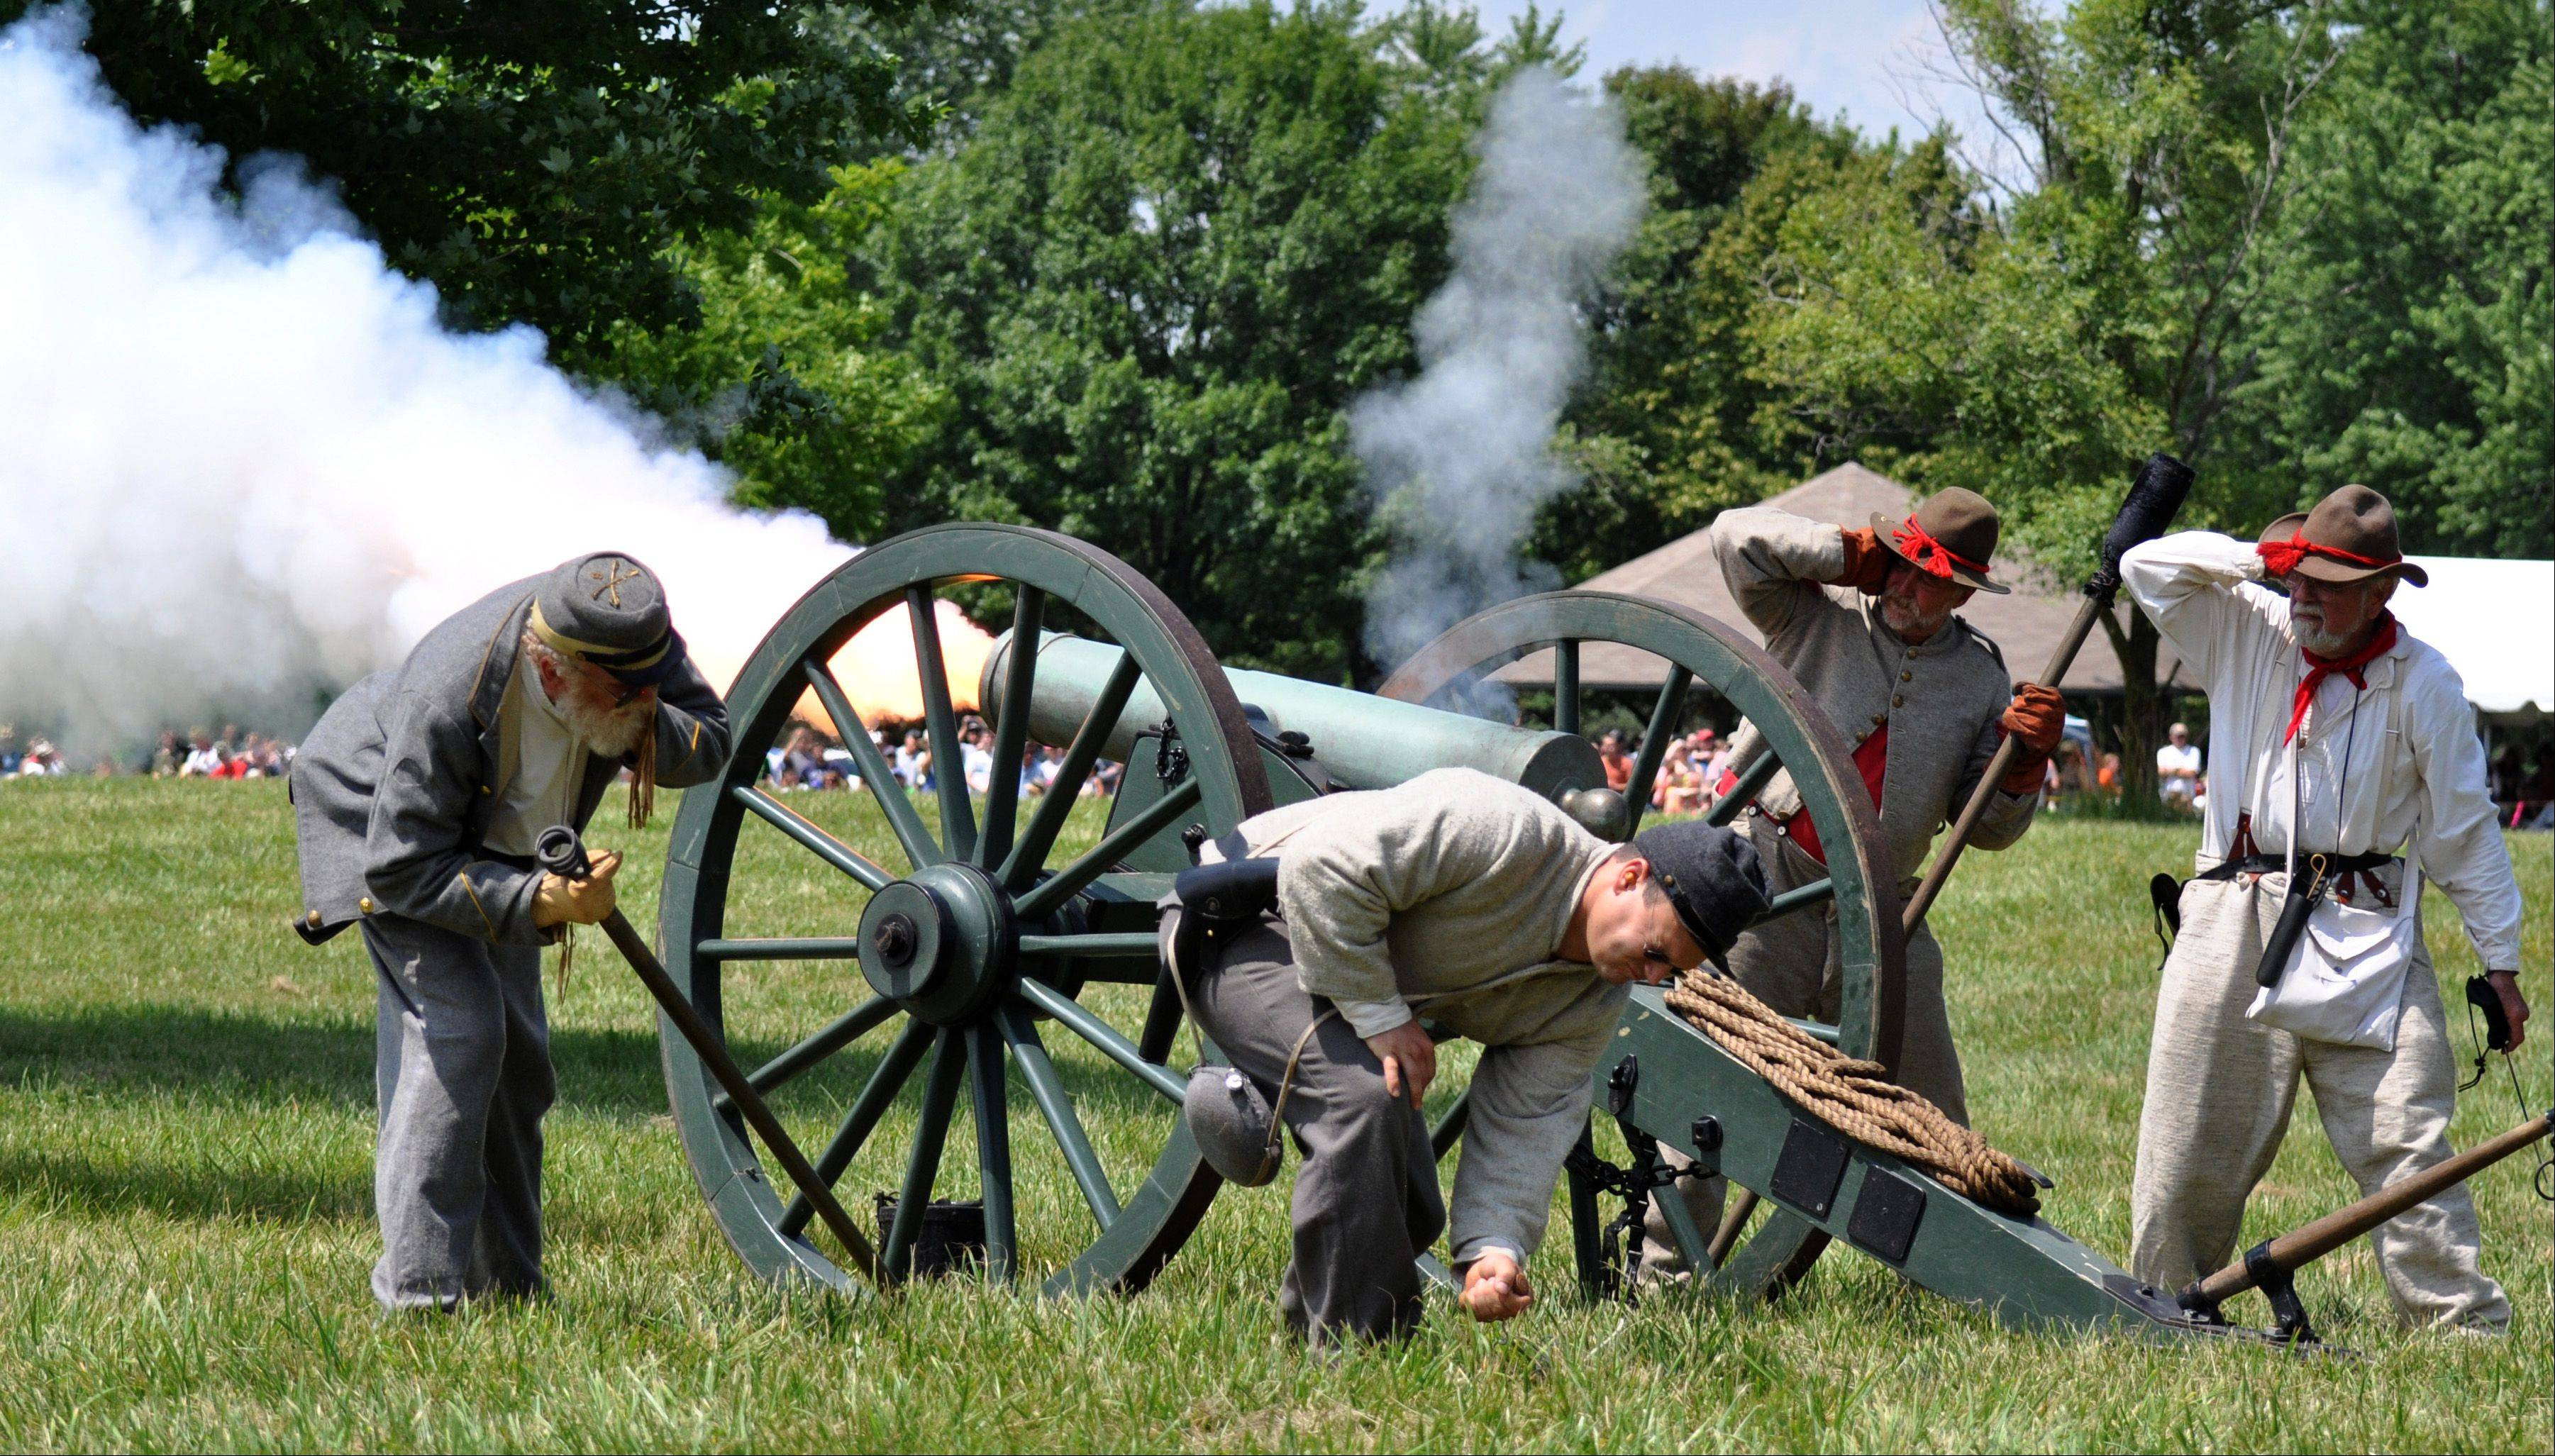 The 9th Virginia Calvary fires a canon during a battle re-enactment Sunday at Civil War Days at the Lakewood Forest Preserve near Wauconda.